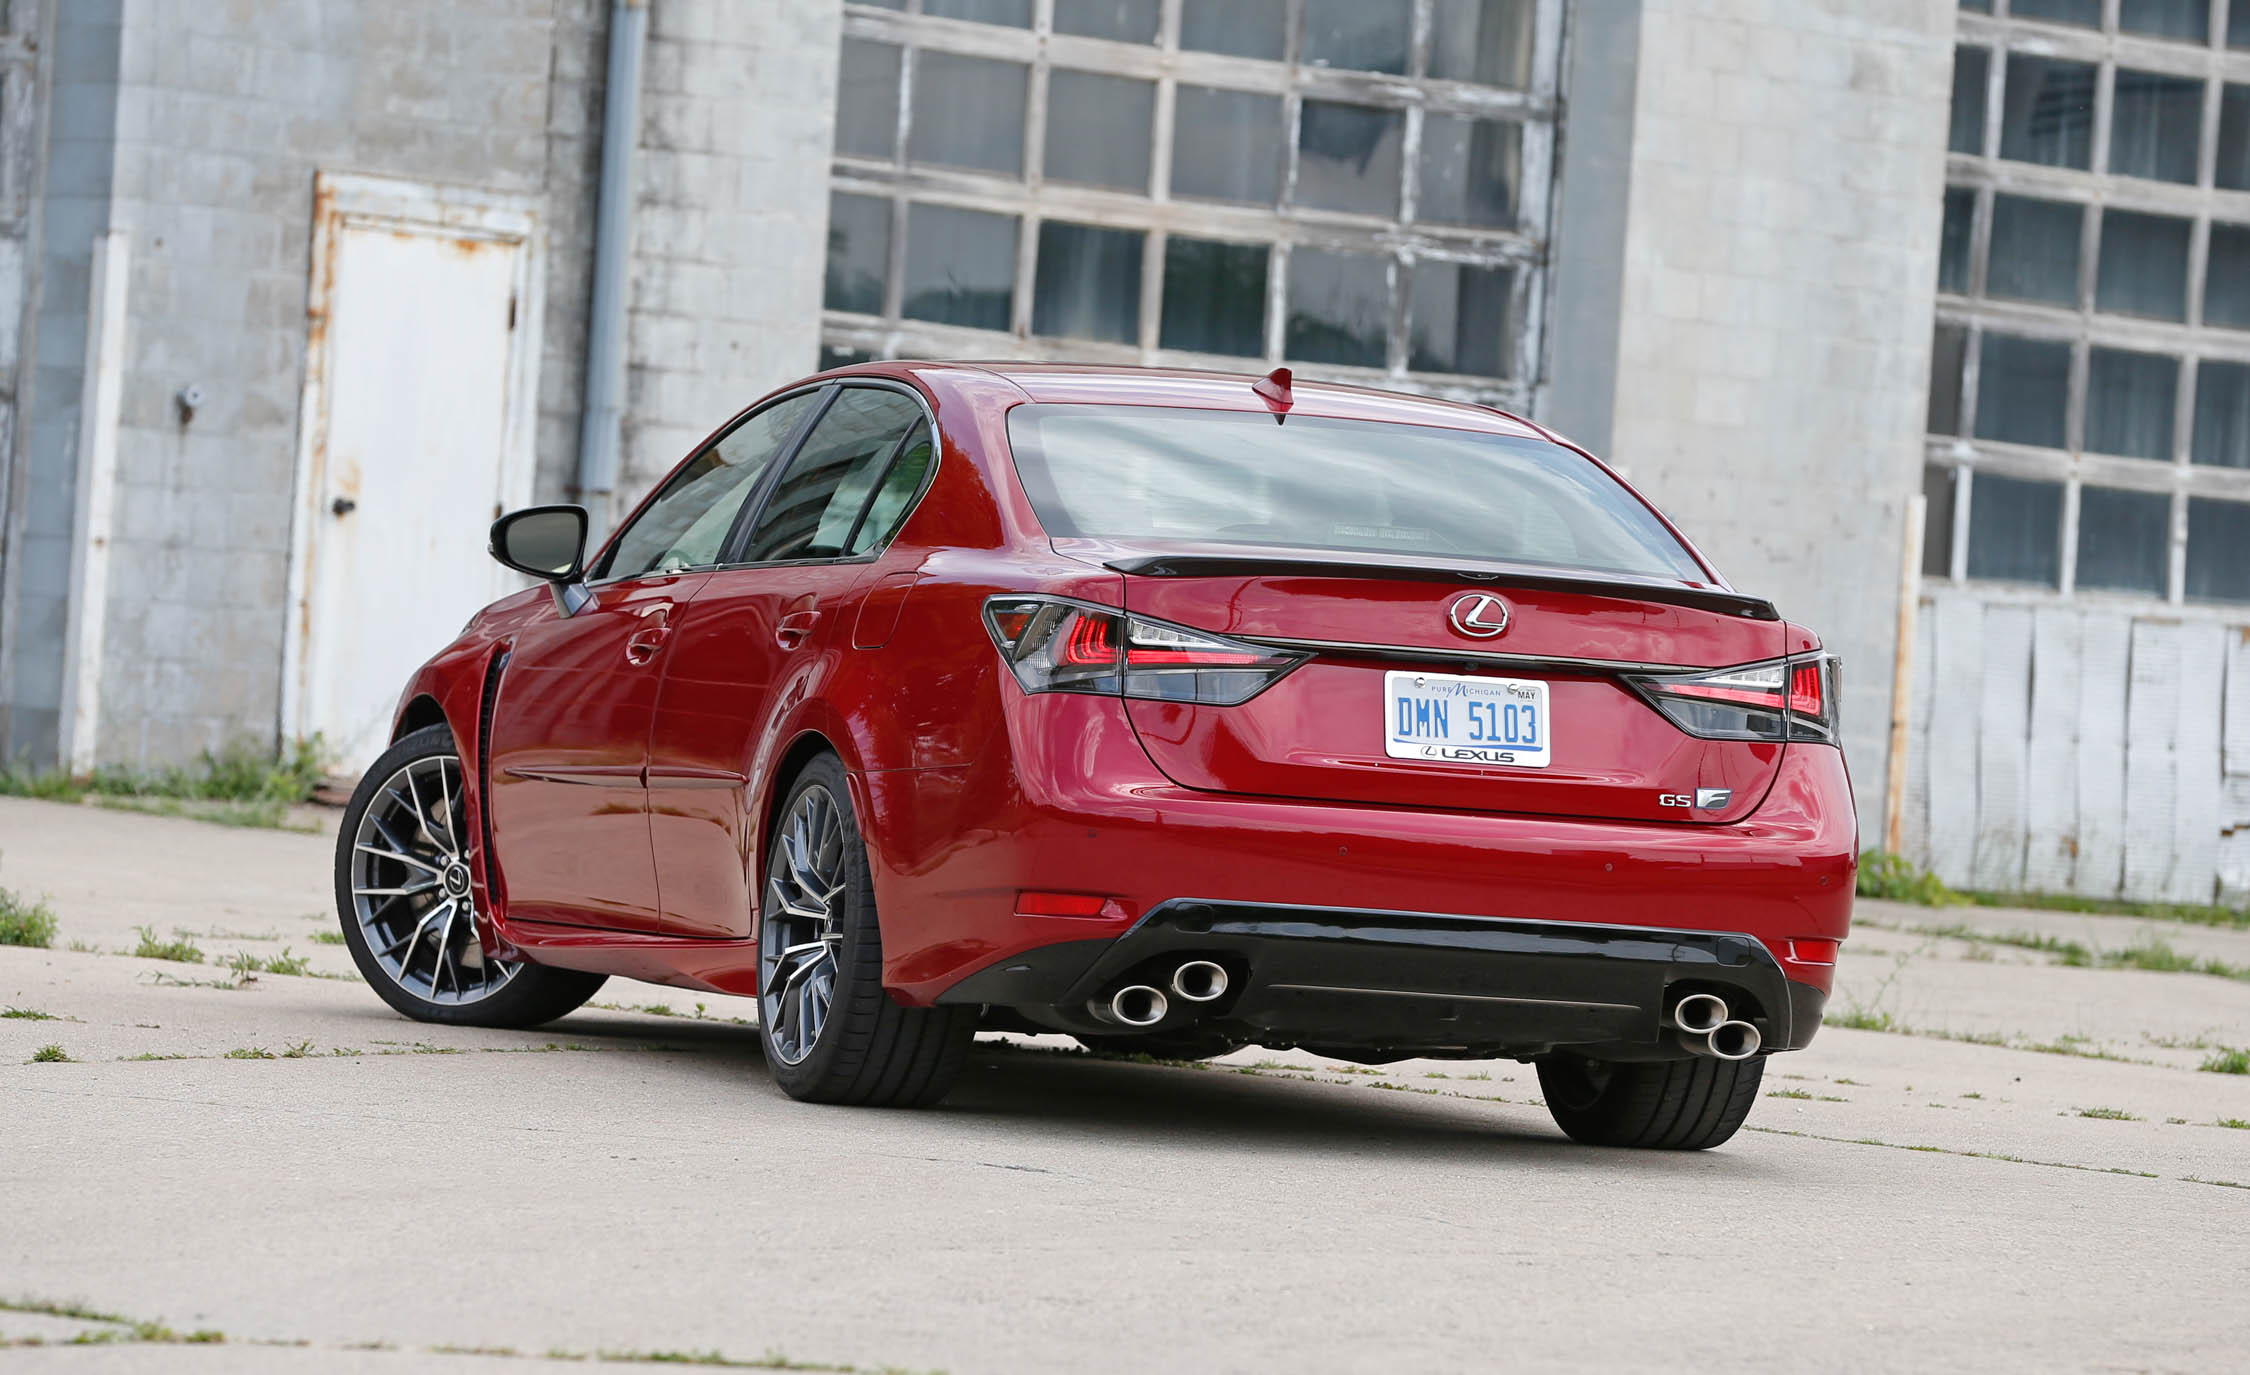 2016 Lexus Gs F Exterior Rear (Photo 19 of 20)